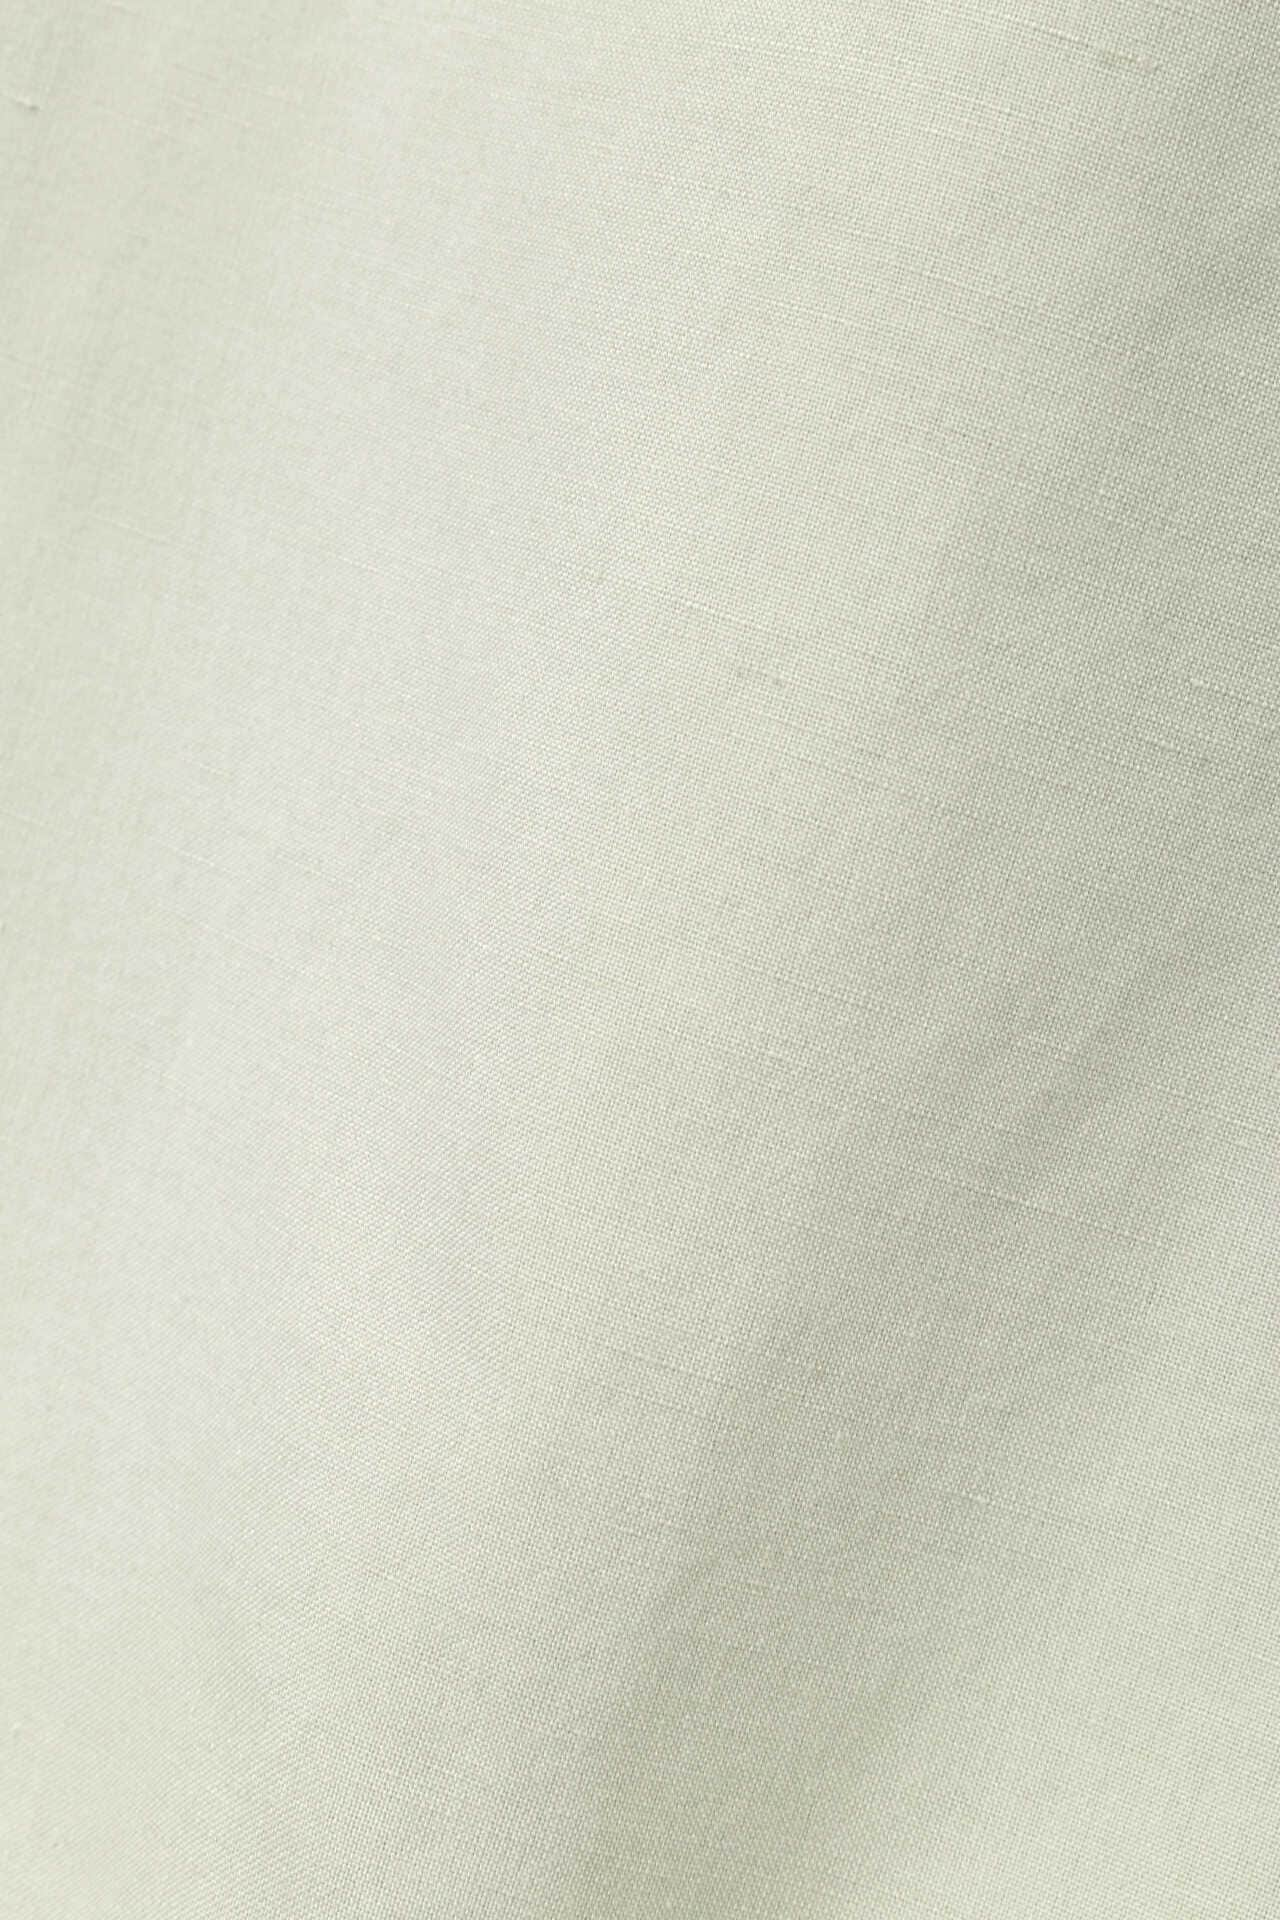 YARN DYED COTTON LINEN4